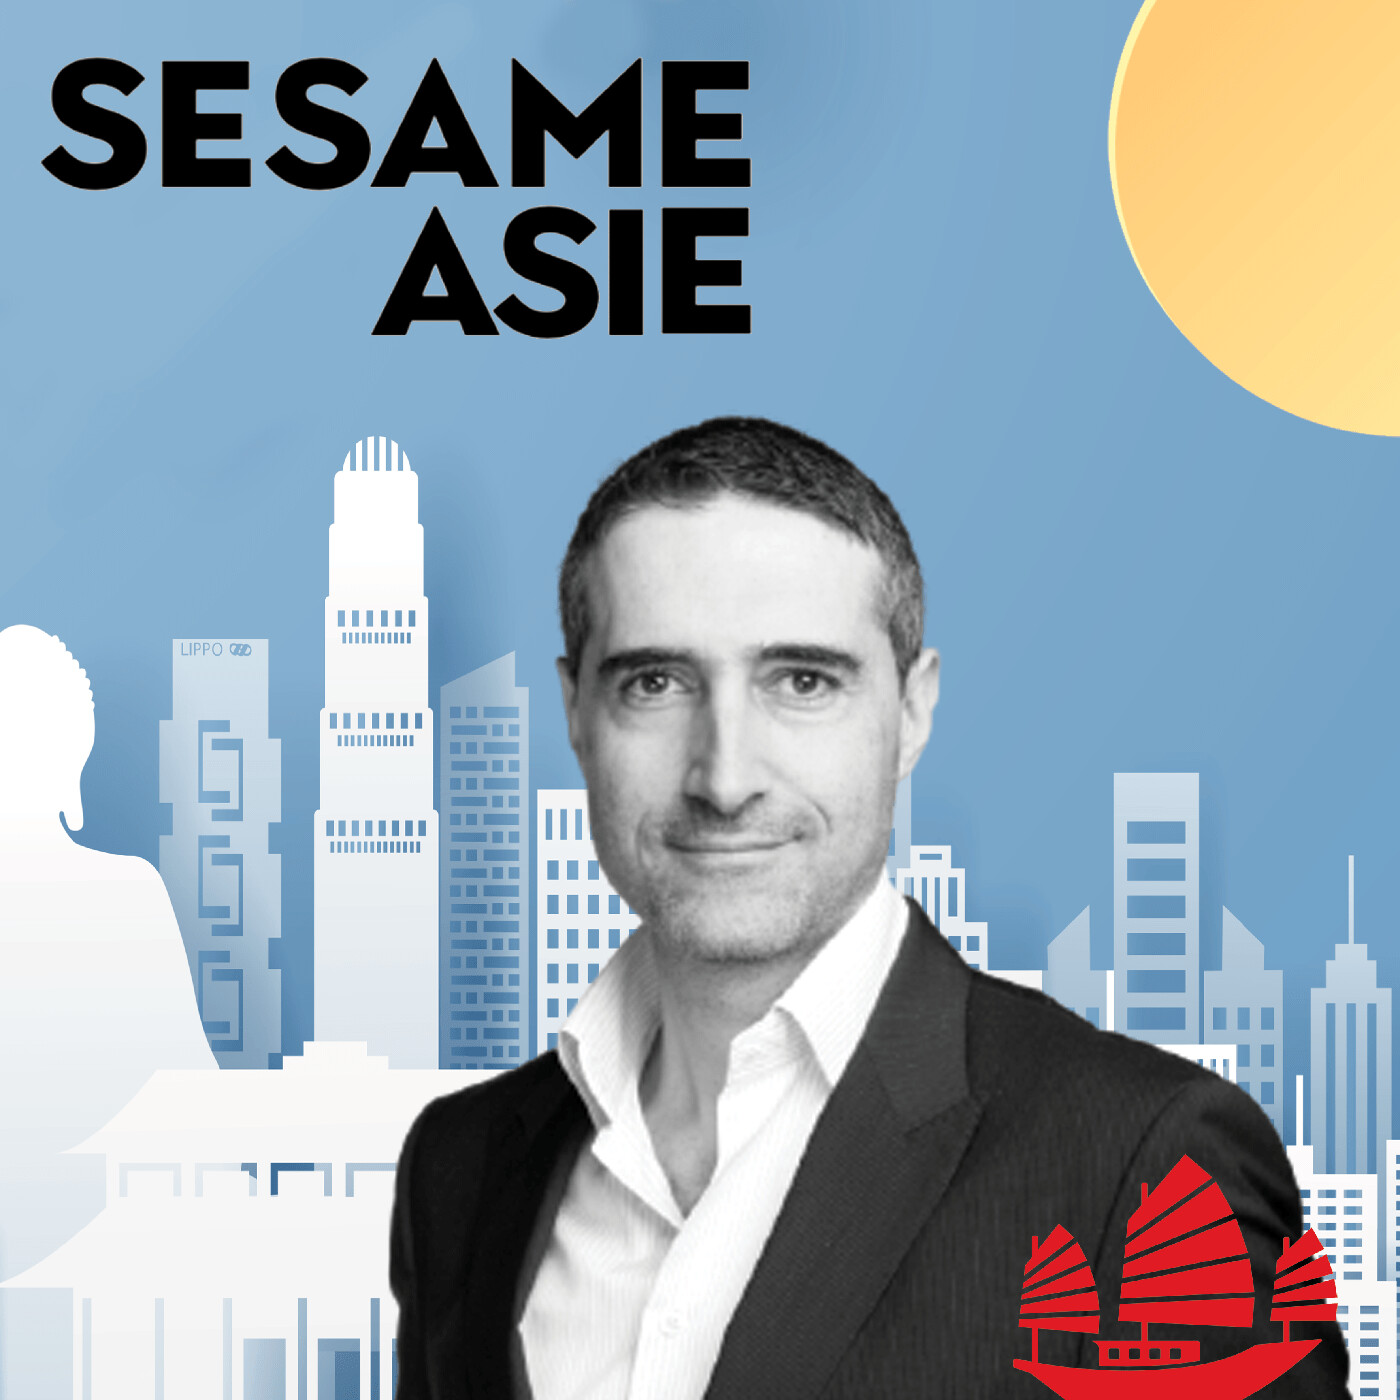 #51 Chine: Bruno Bensaid [Shanghaivest] VC, investissements, Fusacq, Chine - France & France - Chine